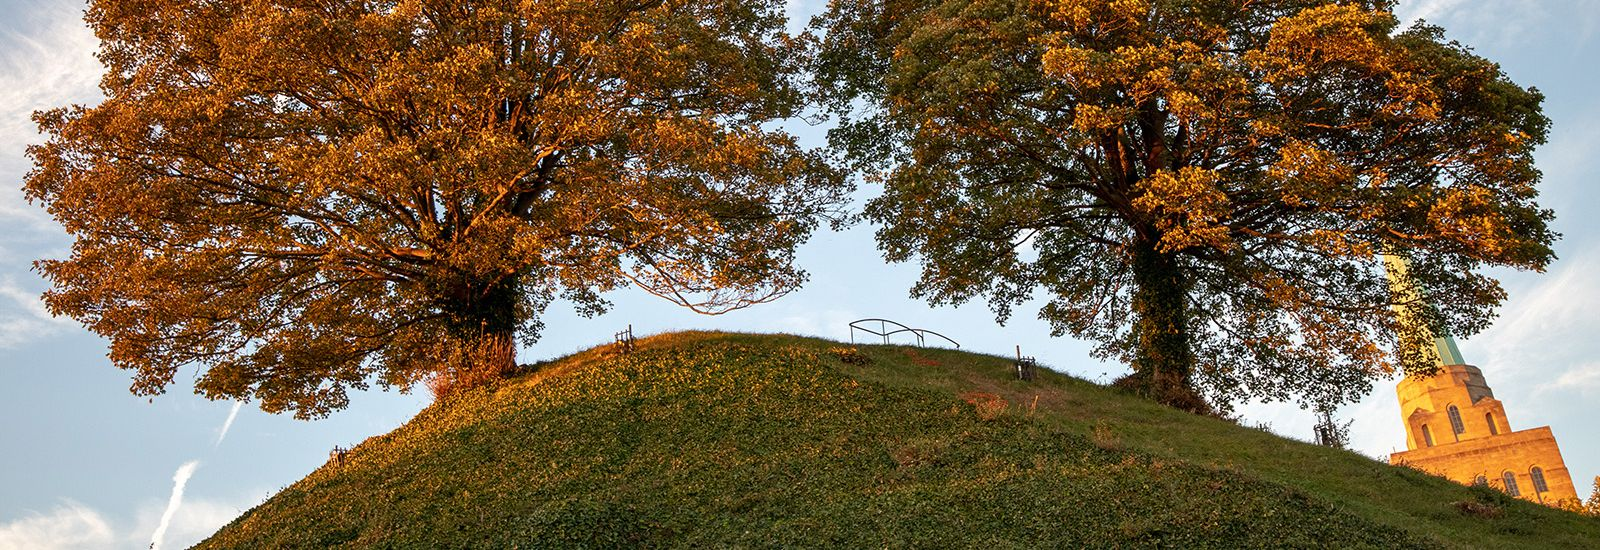 Two trees on a mound of grass